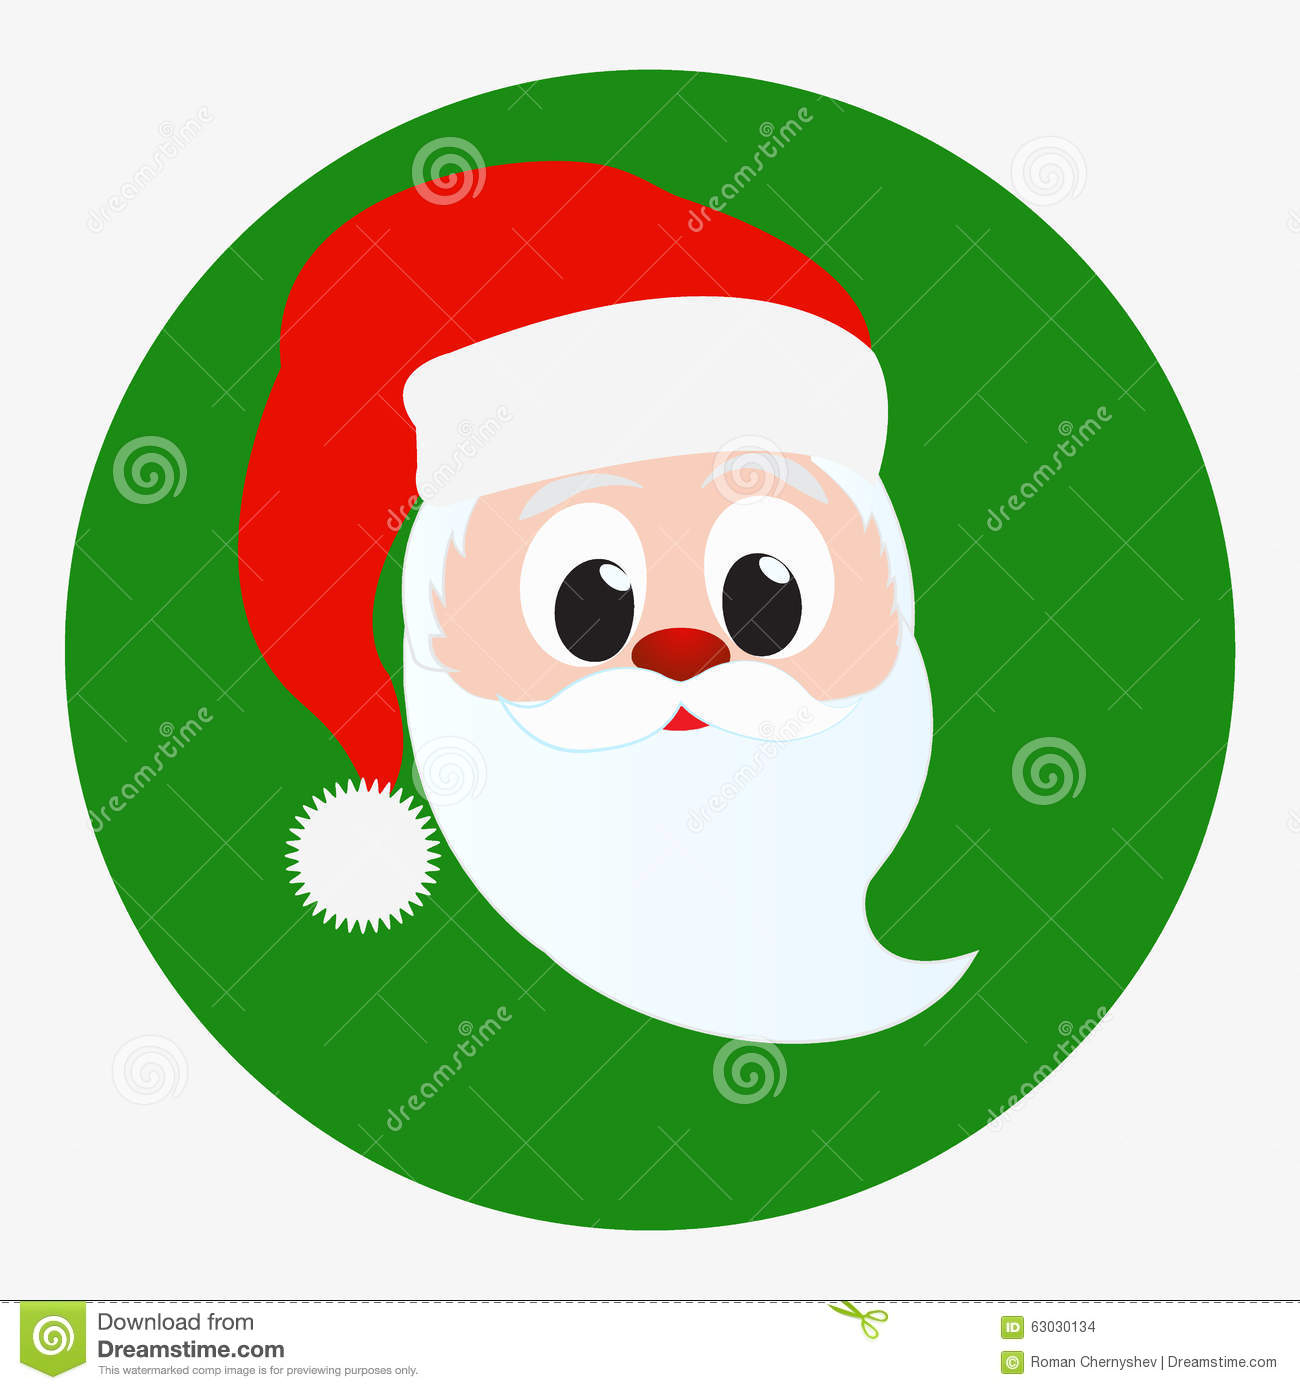 afe461ca8b589 Santa Claus happy face portrait. Icon isolated on green circle background.  Red Christmas hat and white beard and mustache. Editable Christmas Card  vector ...